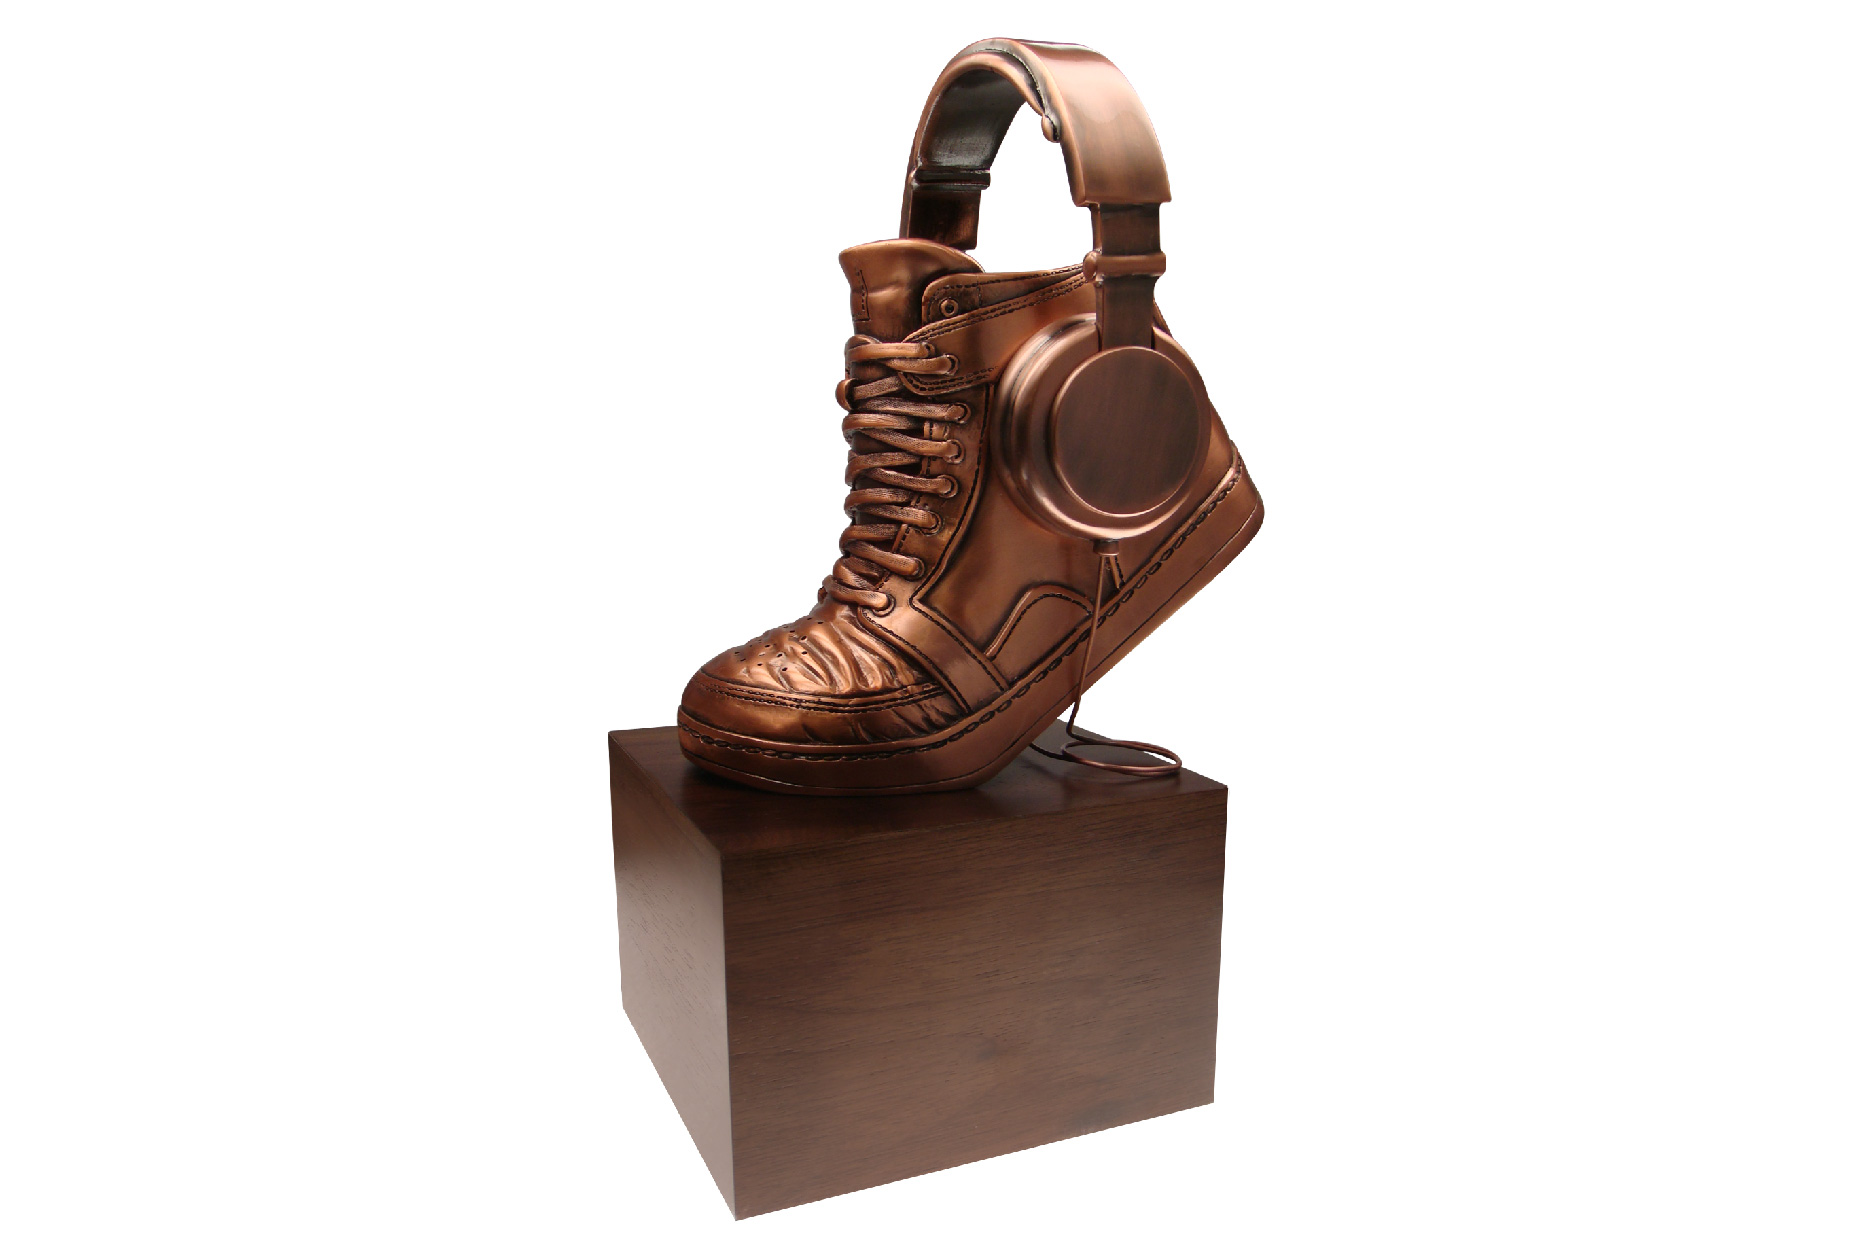 Sneaker Trophy With Headphones